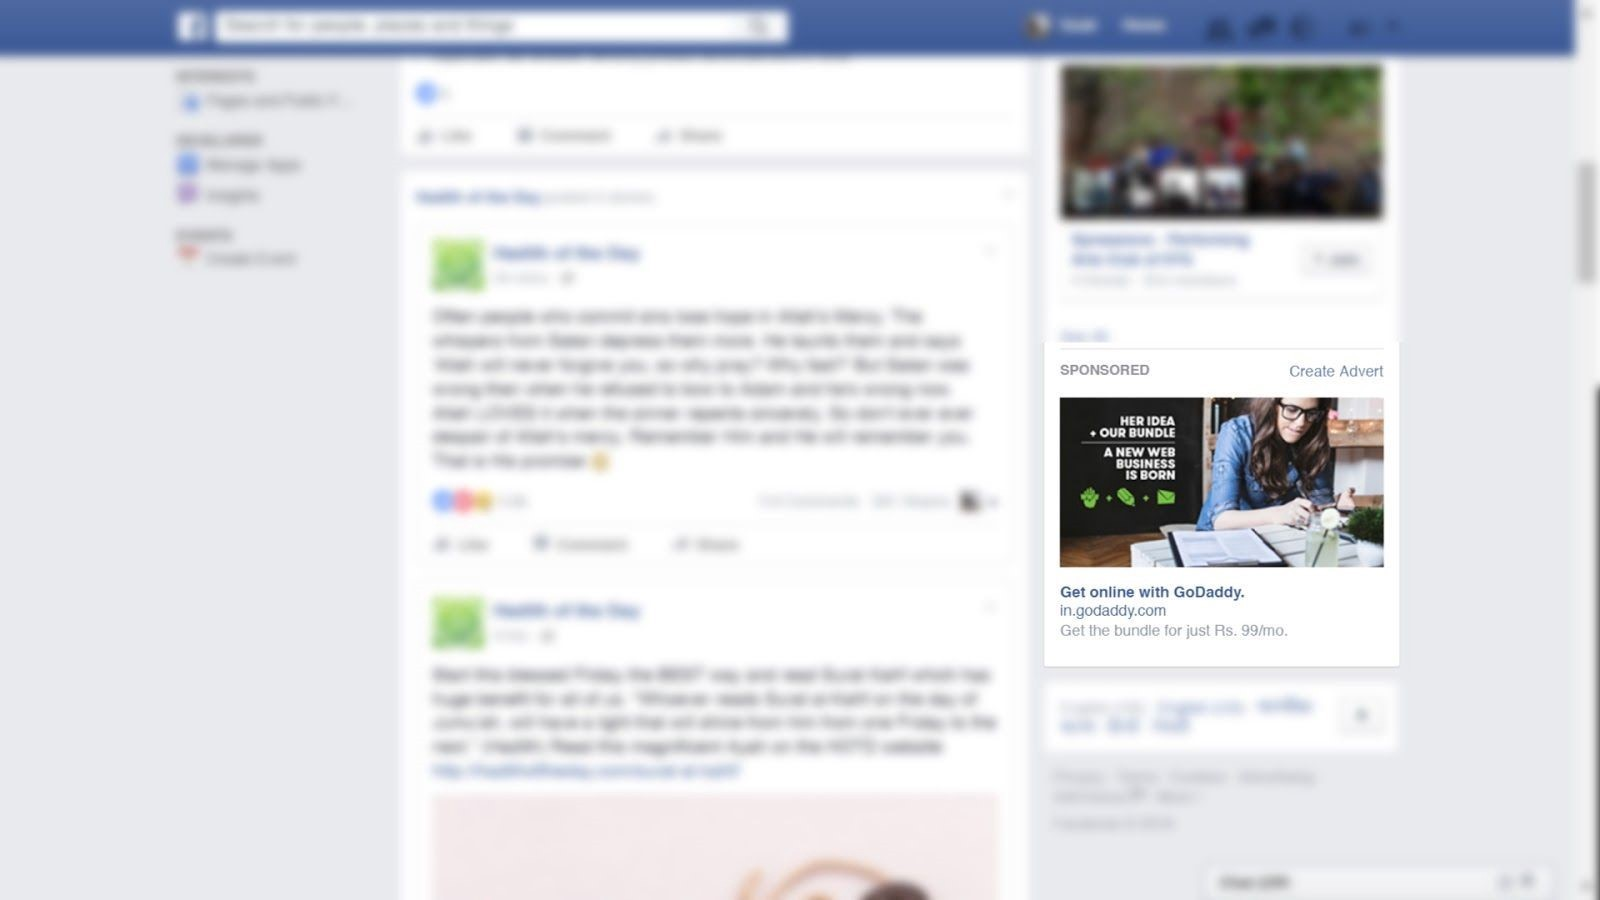 Ways Of Seeing Online An Analysis Of John Bergers Ideas In The  Targeted Facebook Ad Targeting Users Ambition Narrative Essay Example For High School also A Modest Proposal Ideas For Essays  Business Plan Writers Virginia